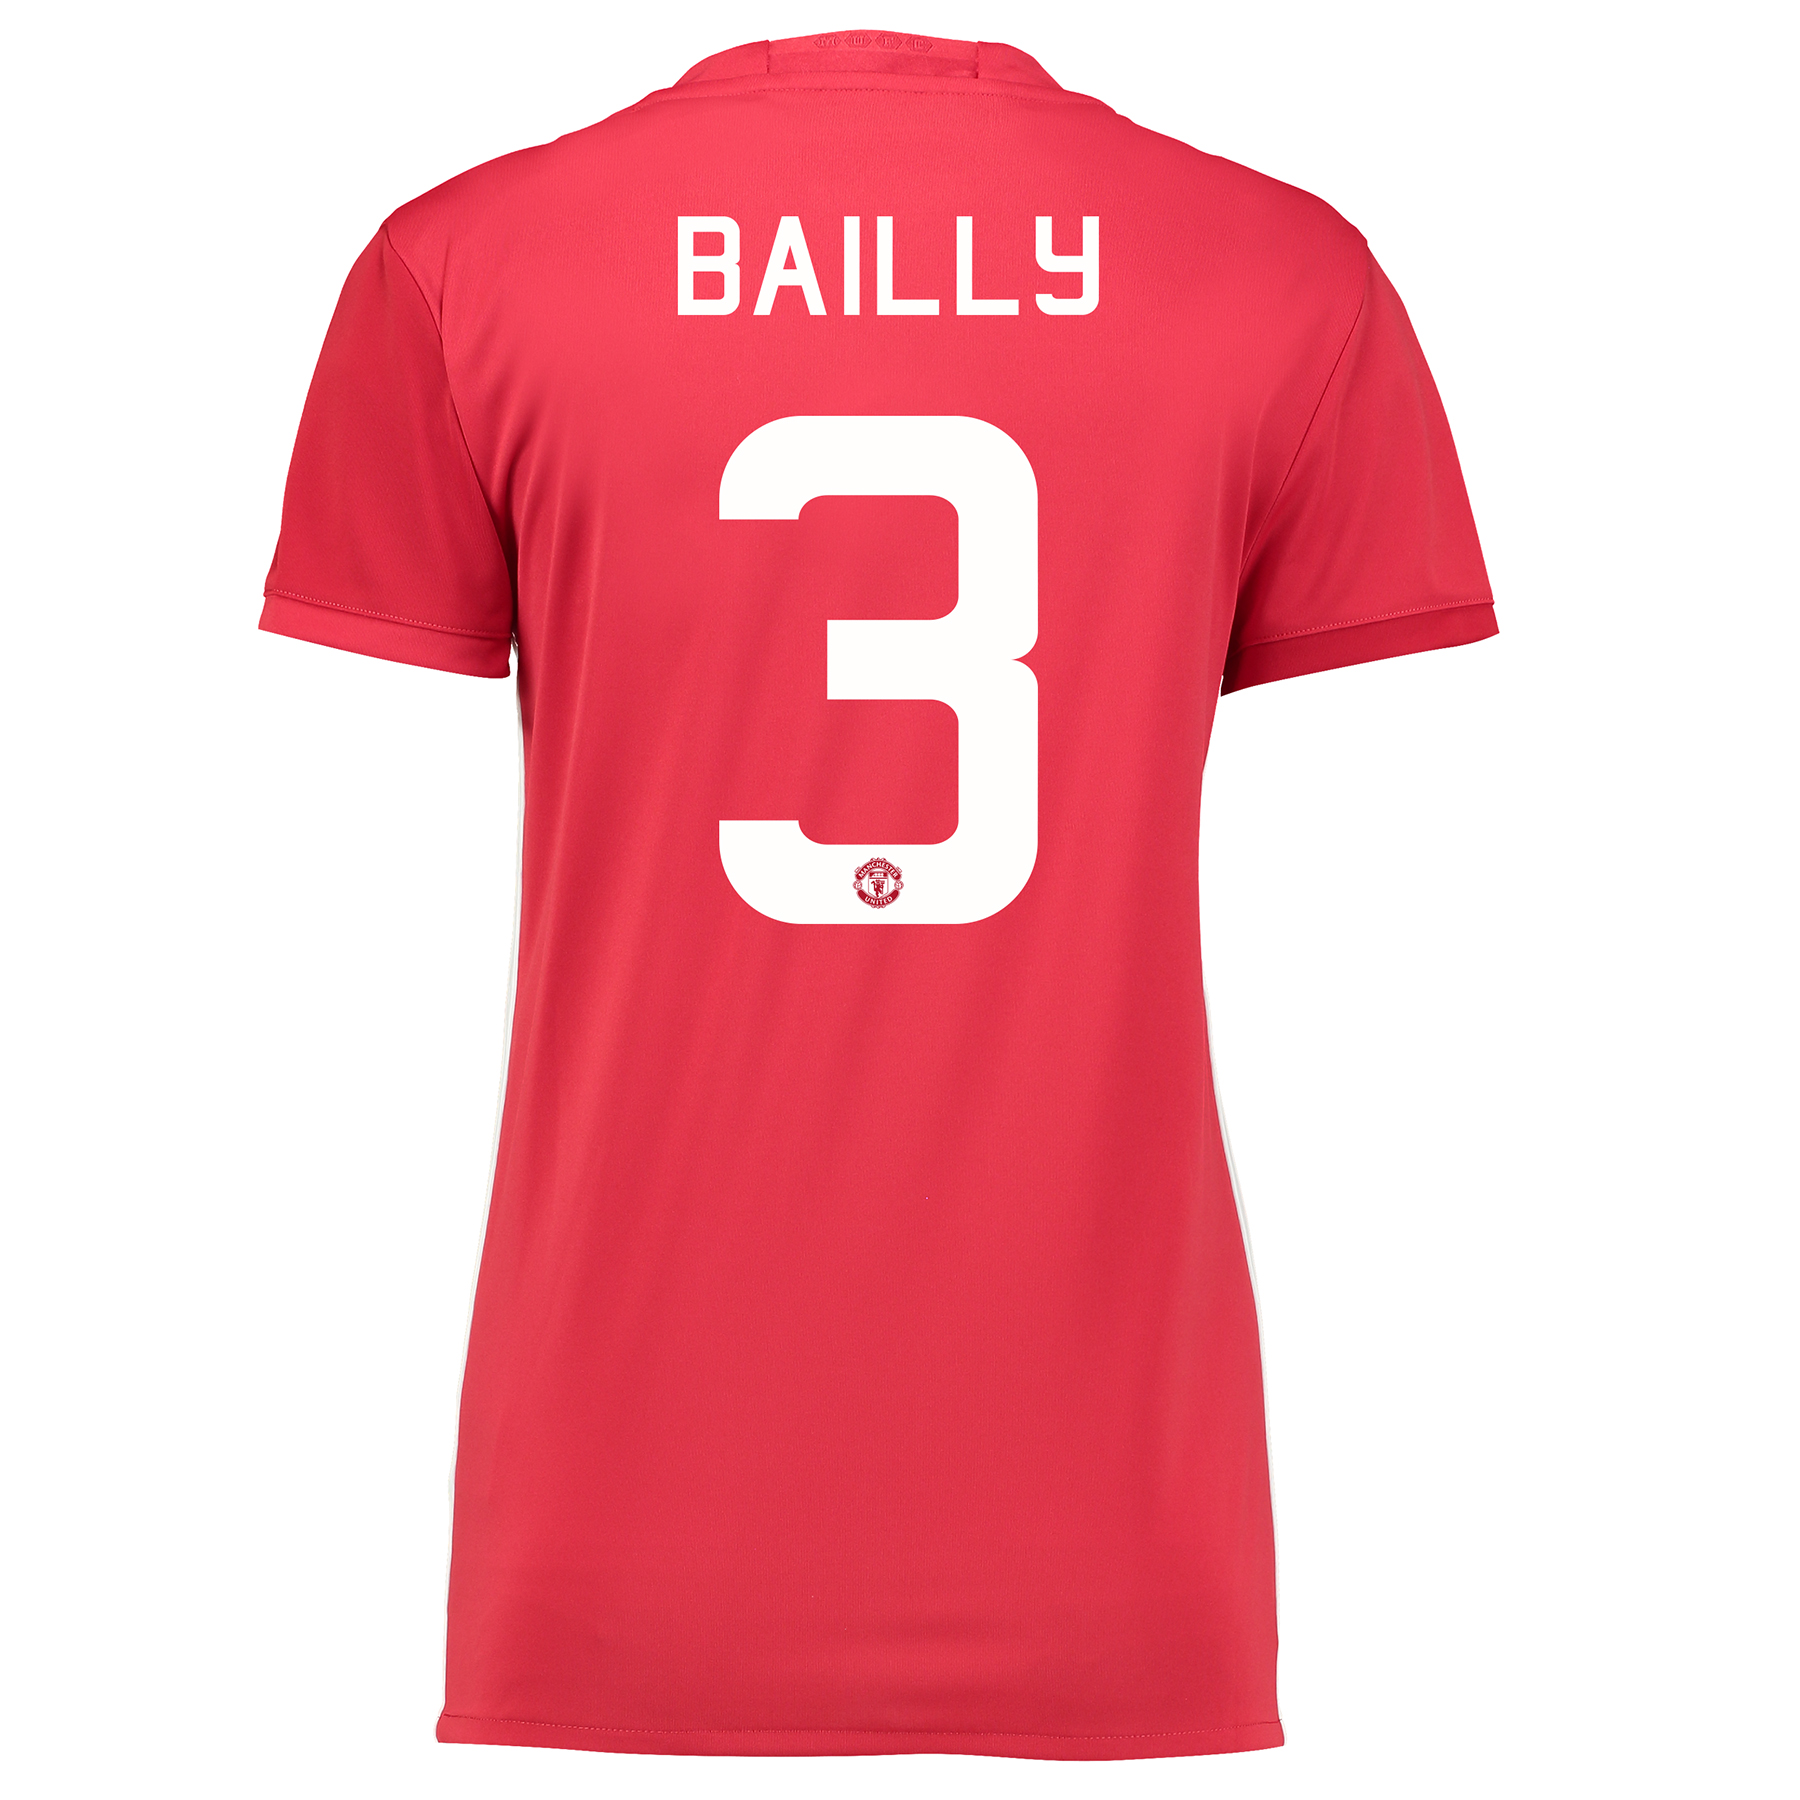 Manchester United Cup Home Shirt 2016-17 - Womens with Bailly 3 printi